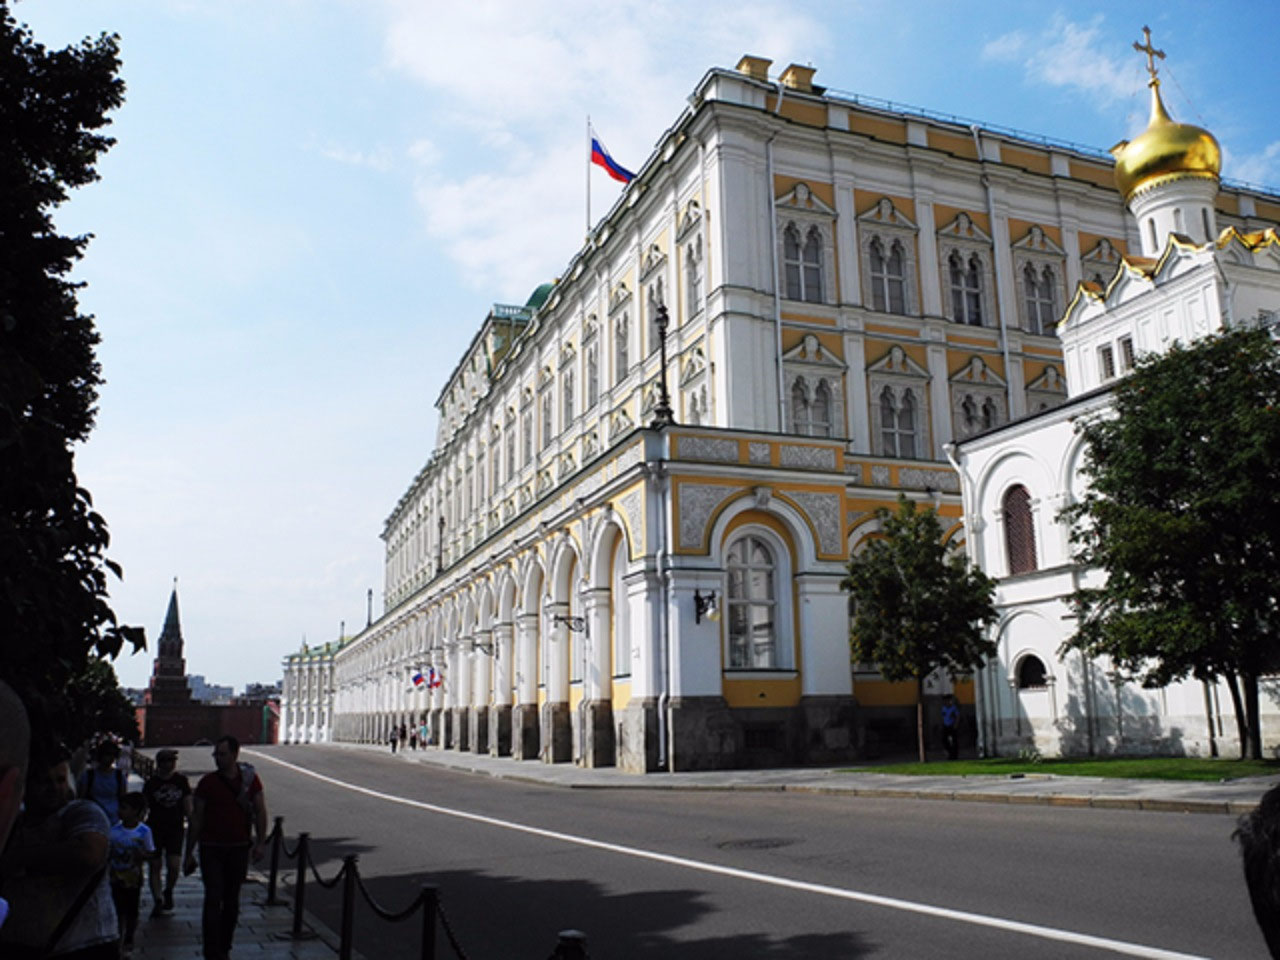 The Armoury is located in the Grand Palace